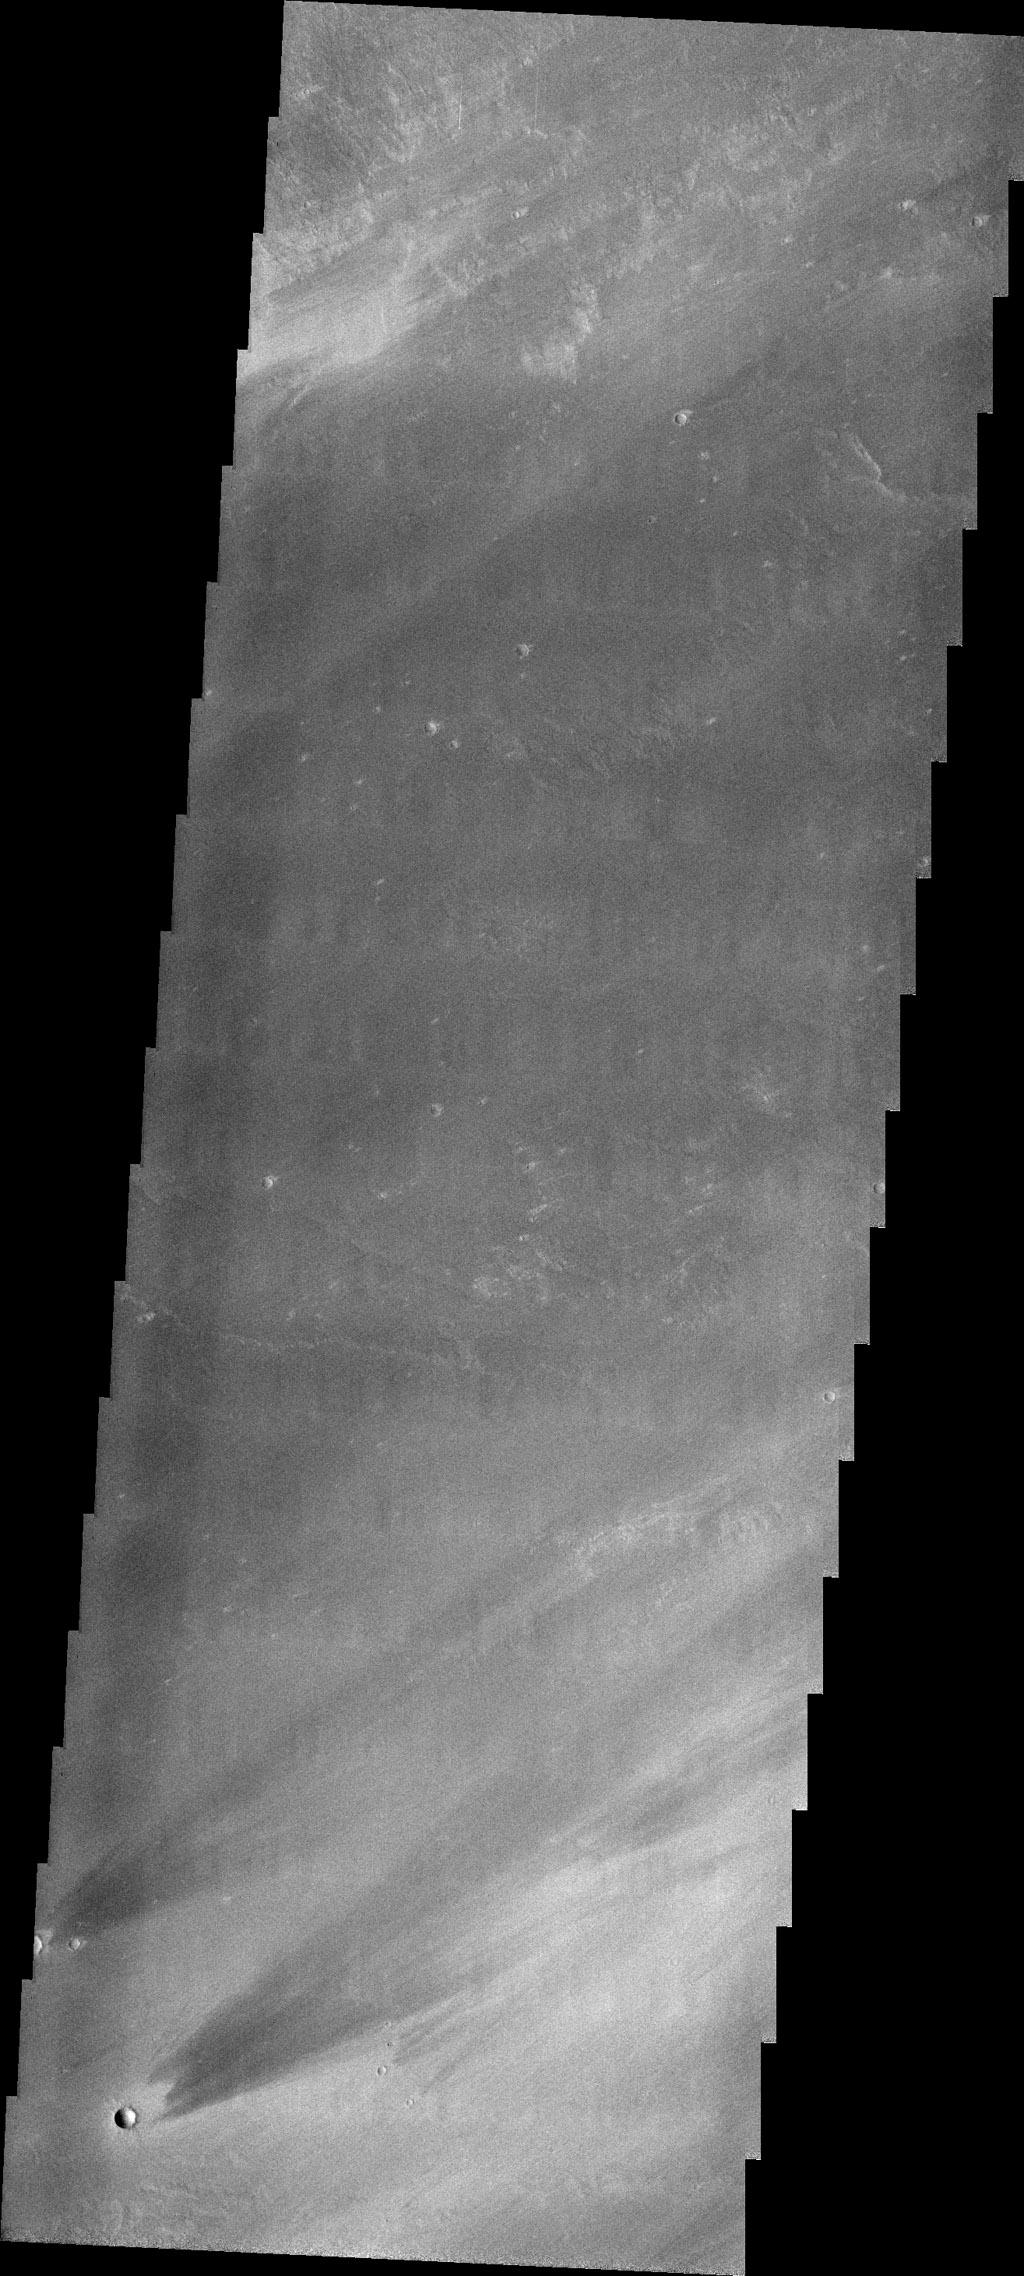 The windstreaks in this image captured by NASA's 2001 Mars Odyssey spacecraft are located on Tharsis volcanic flows east of Pavonis Mons.